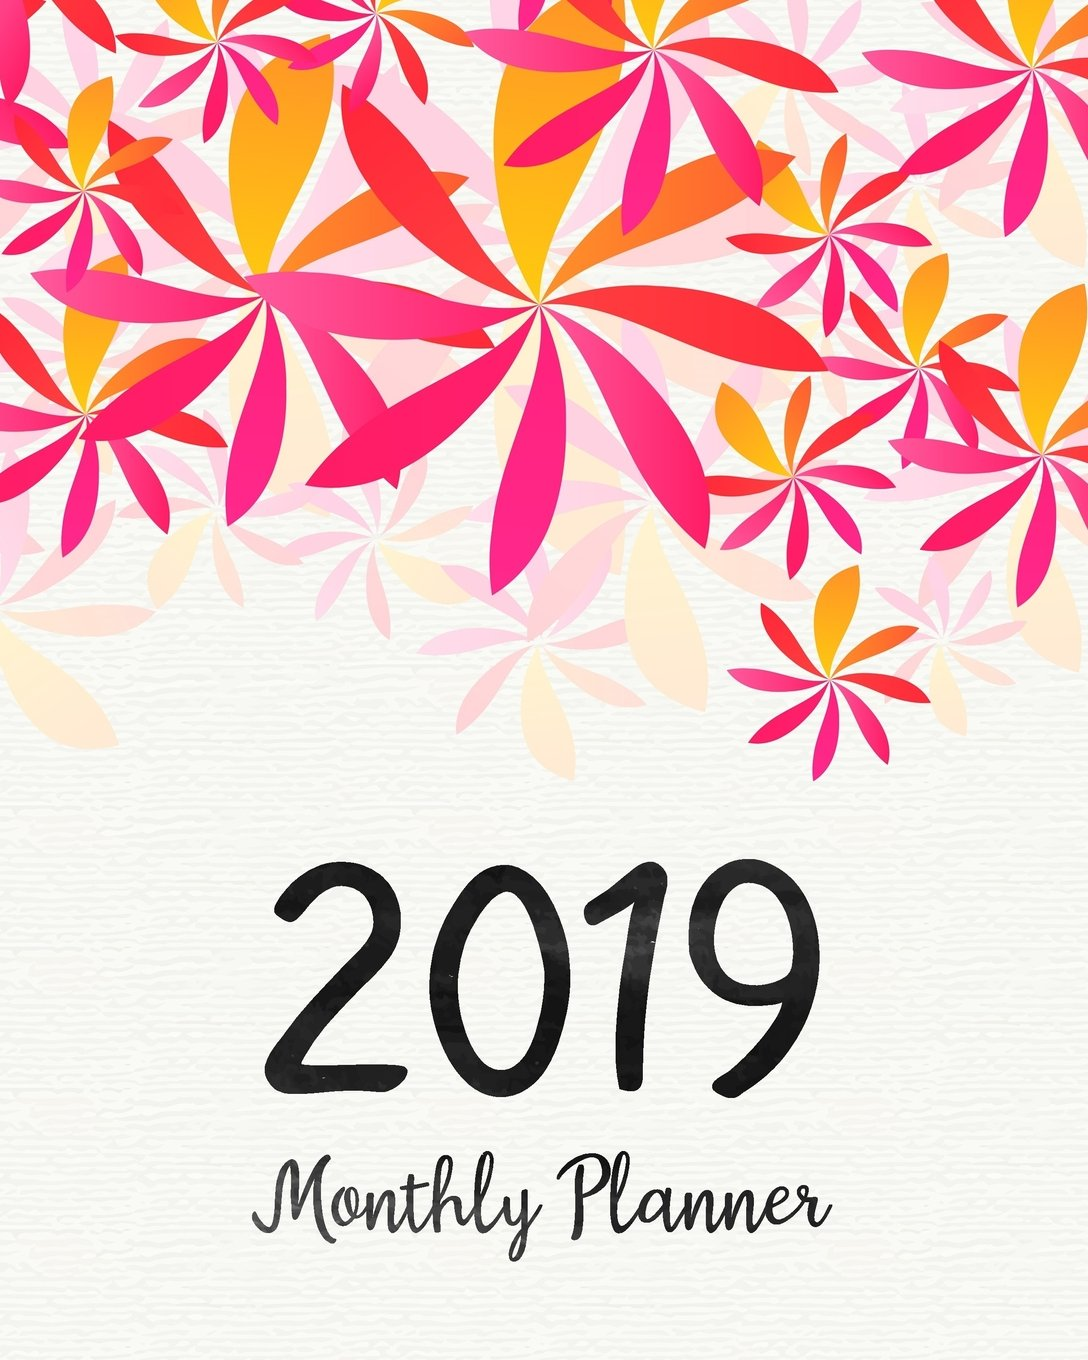 2019 monthly planner a year 12 month january 2019 to december 2019 for to do list journal notebook planners and academic agenda schedule weekly monthly calendar planner volume 2